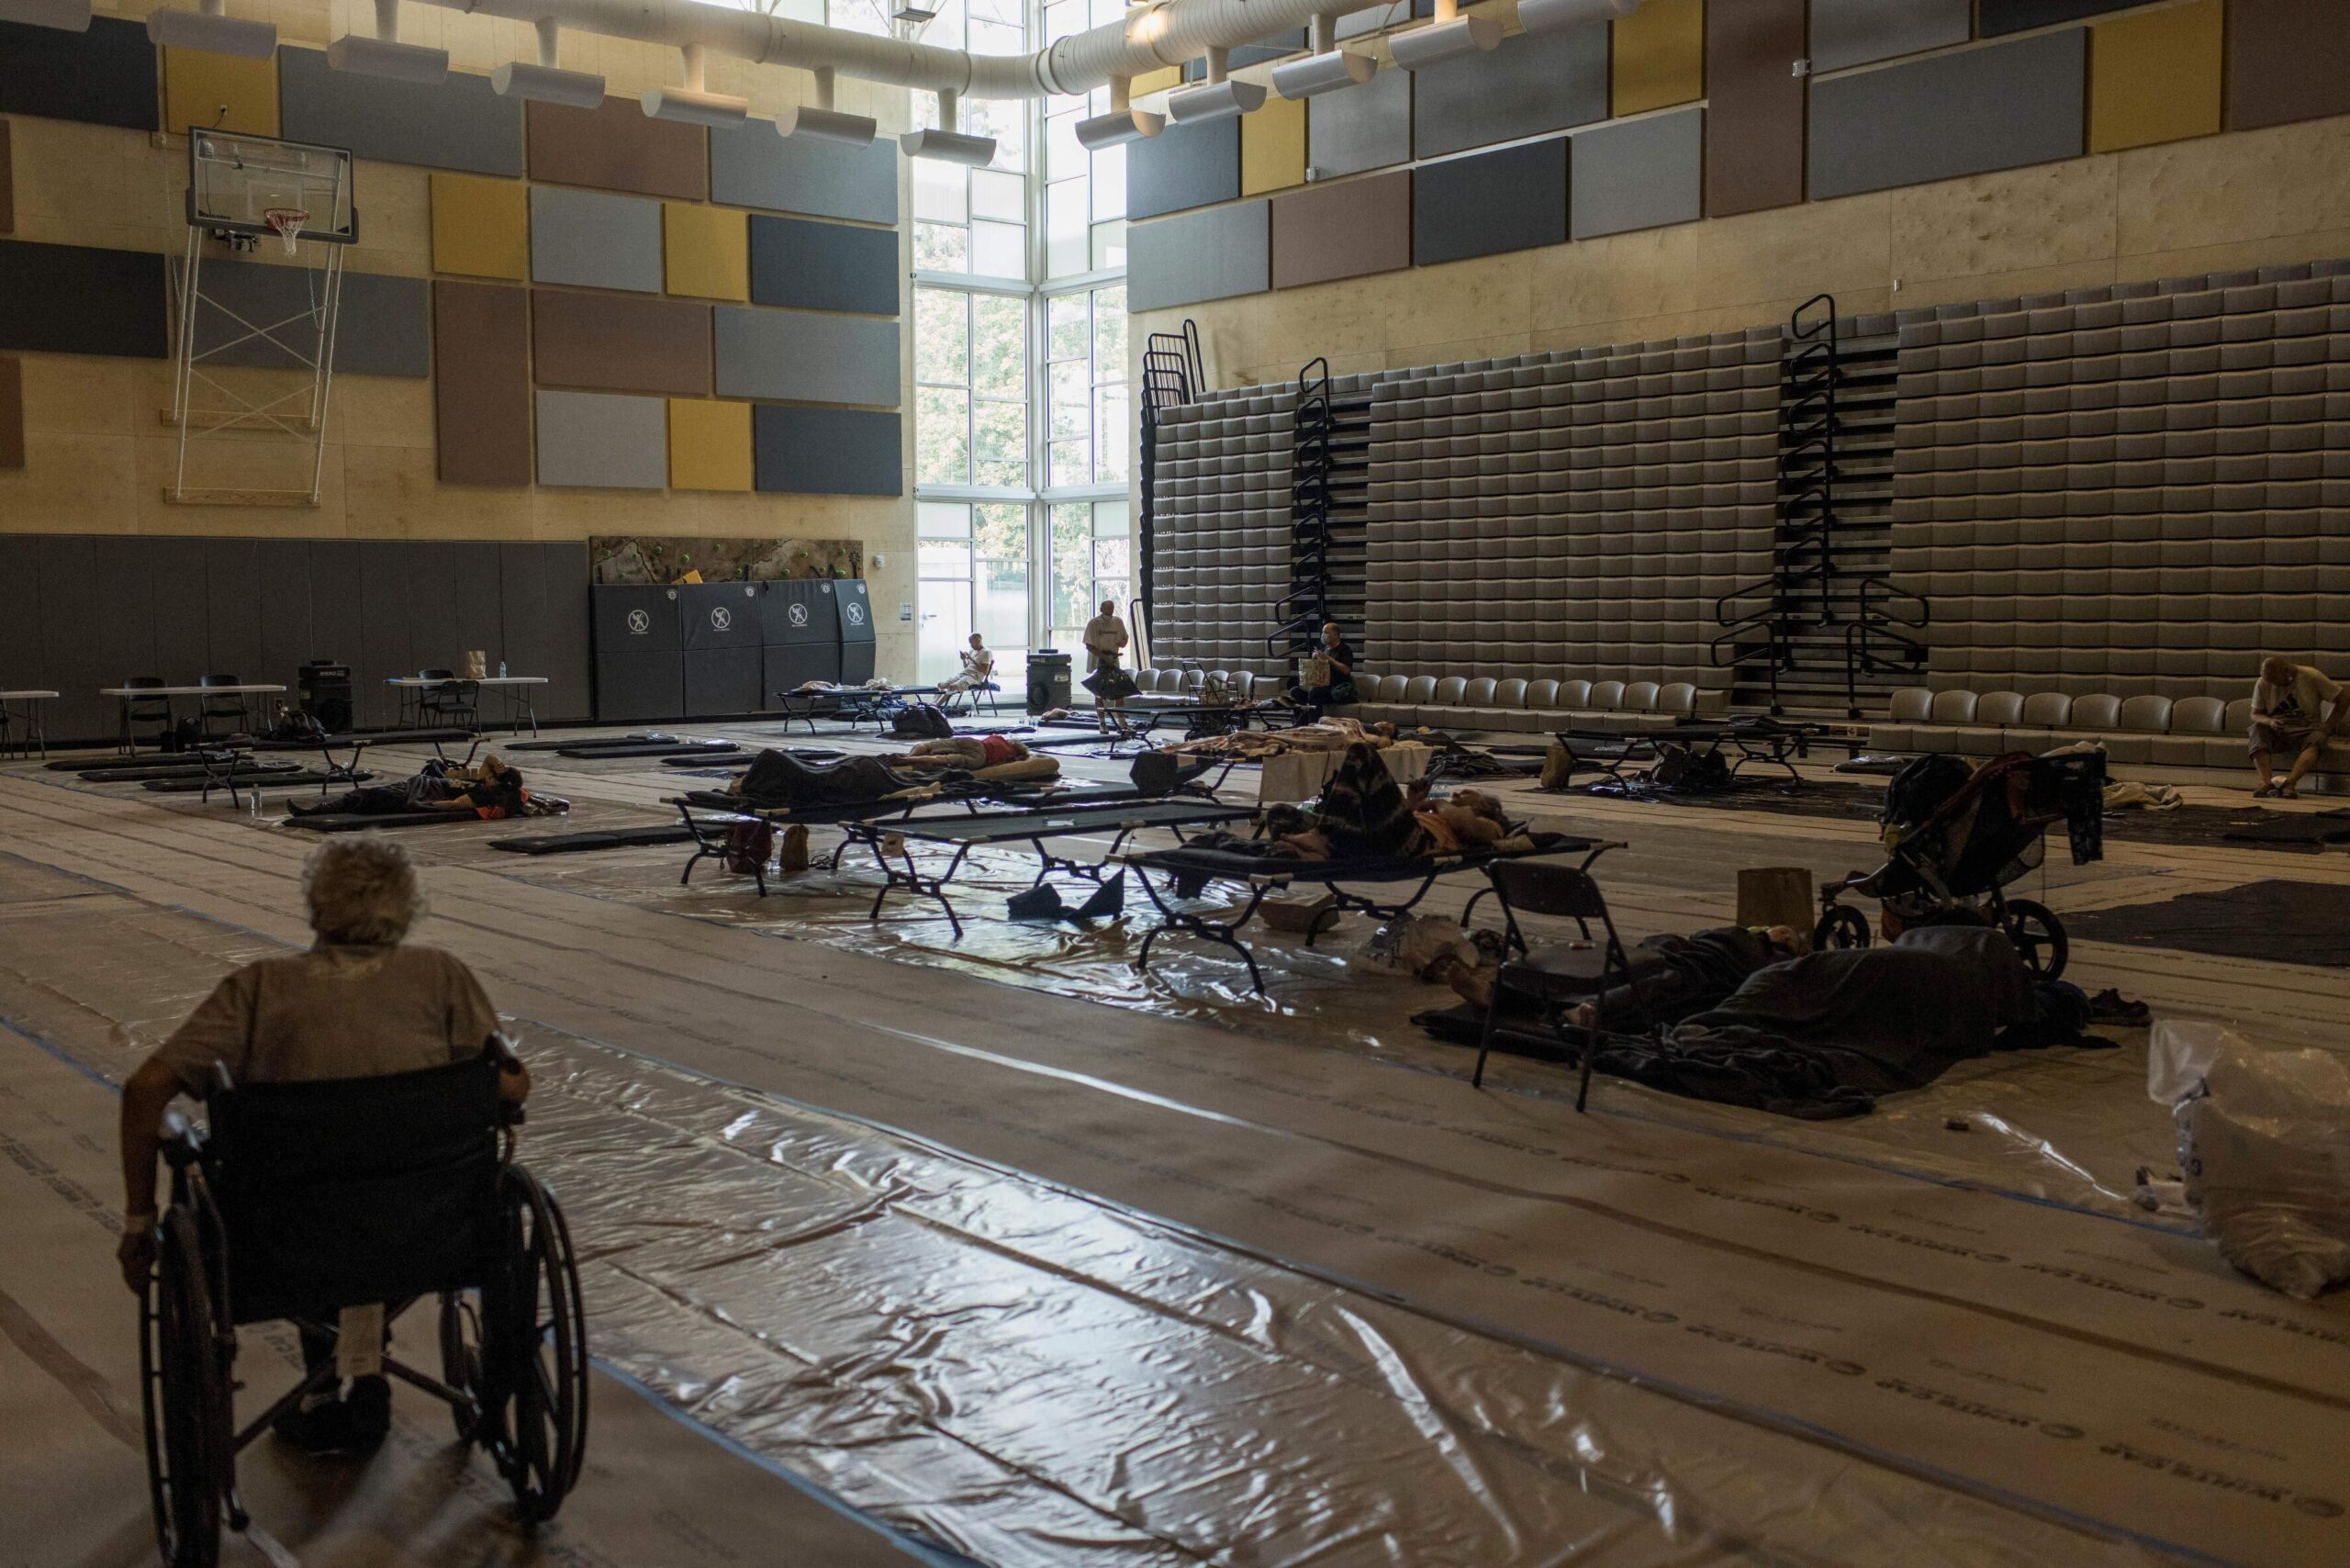 <i>Michael Hanson/AFP/Getty Images</i><br/>Residents spend the afternoon at a cooling center at Kellogg Middle School in Portland